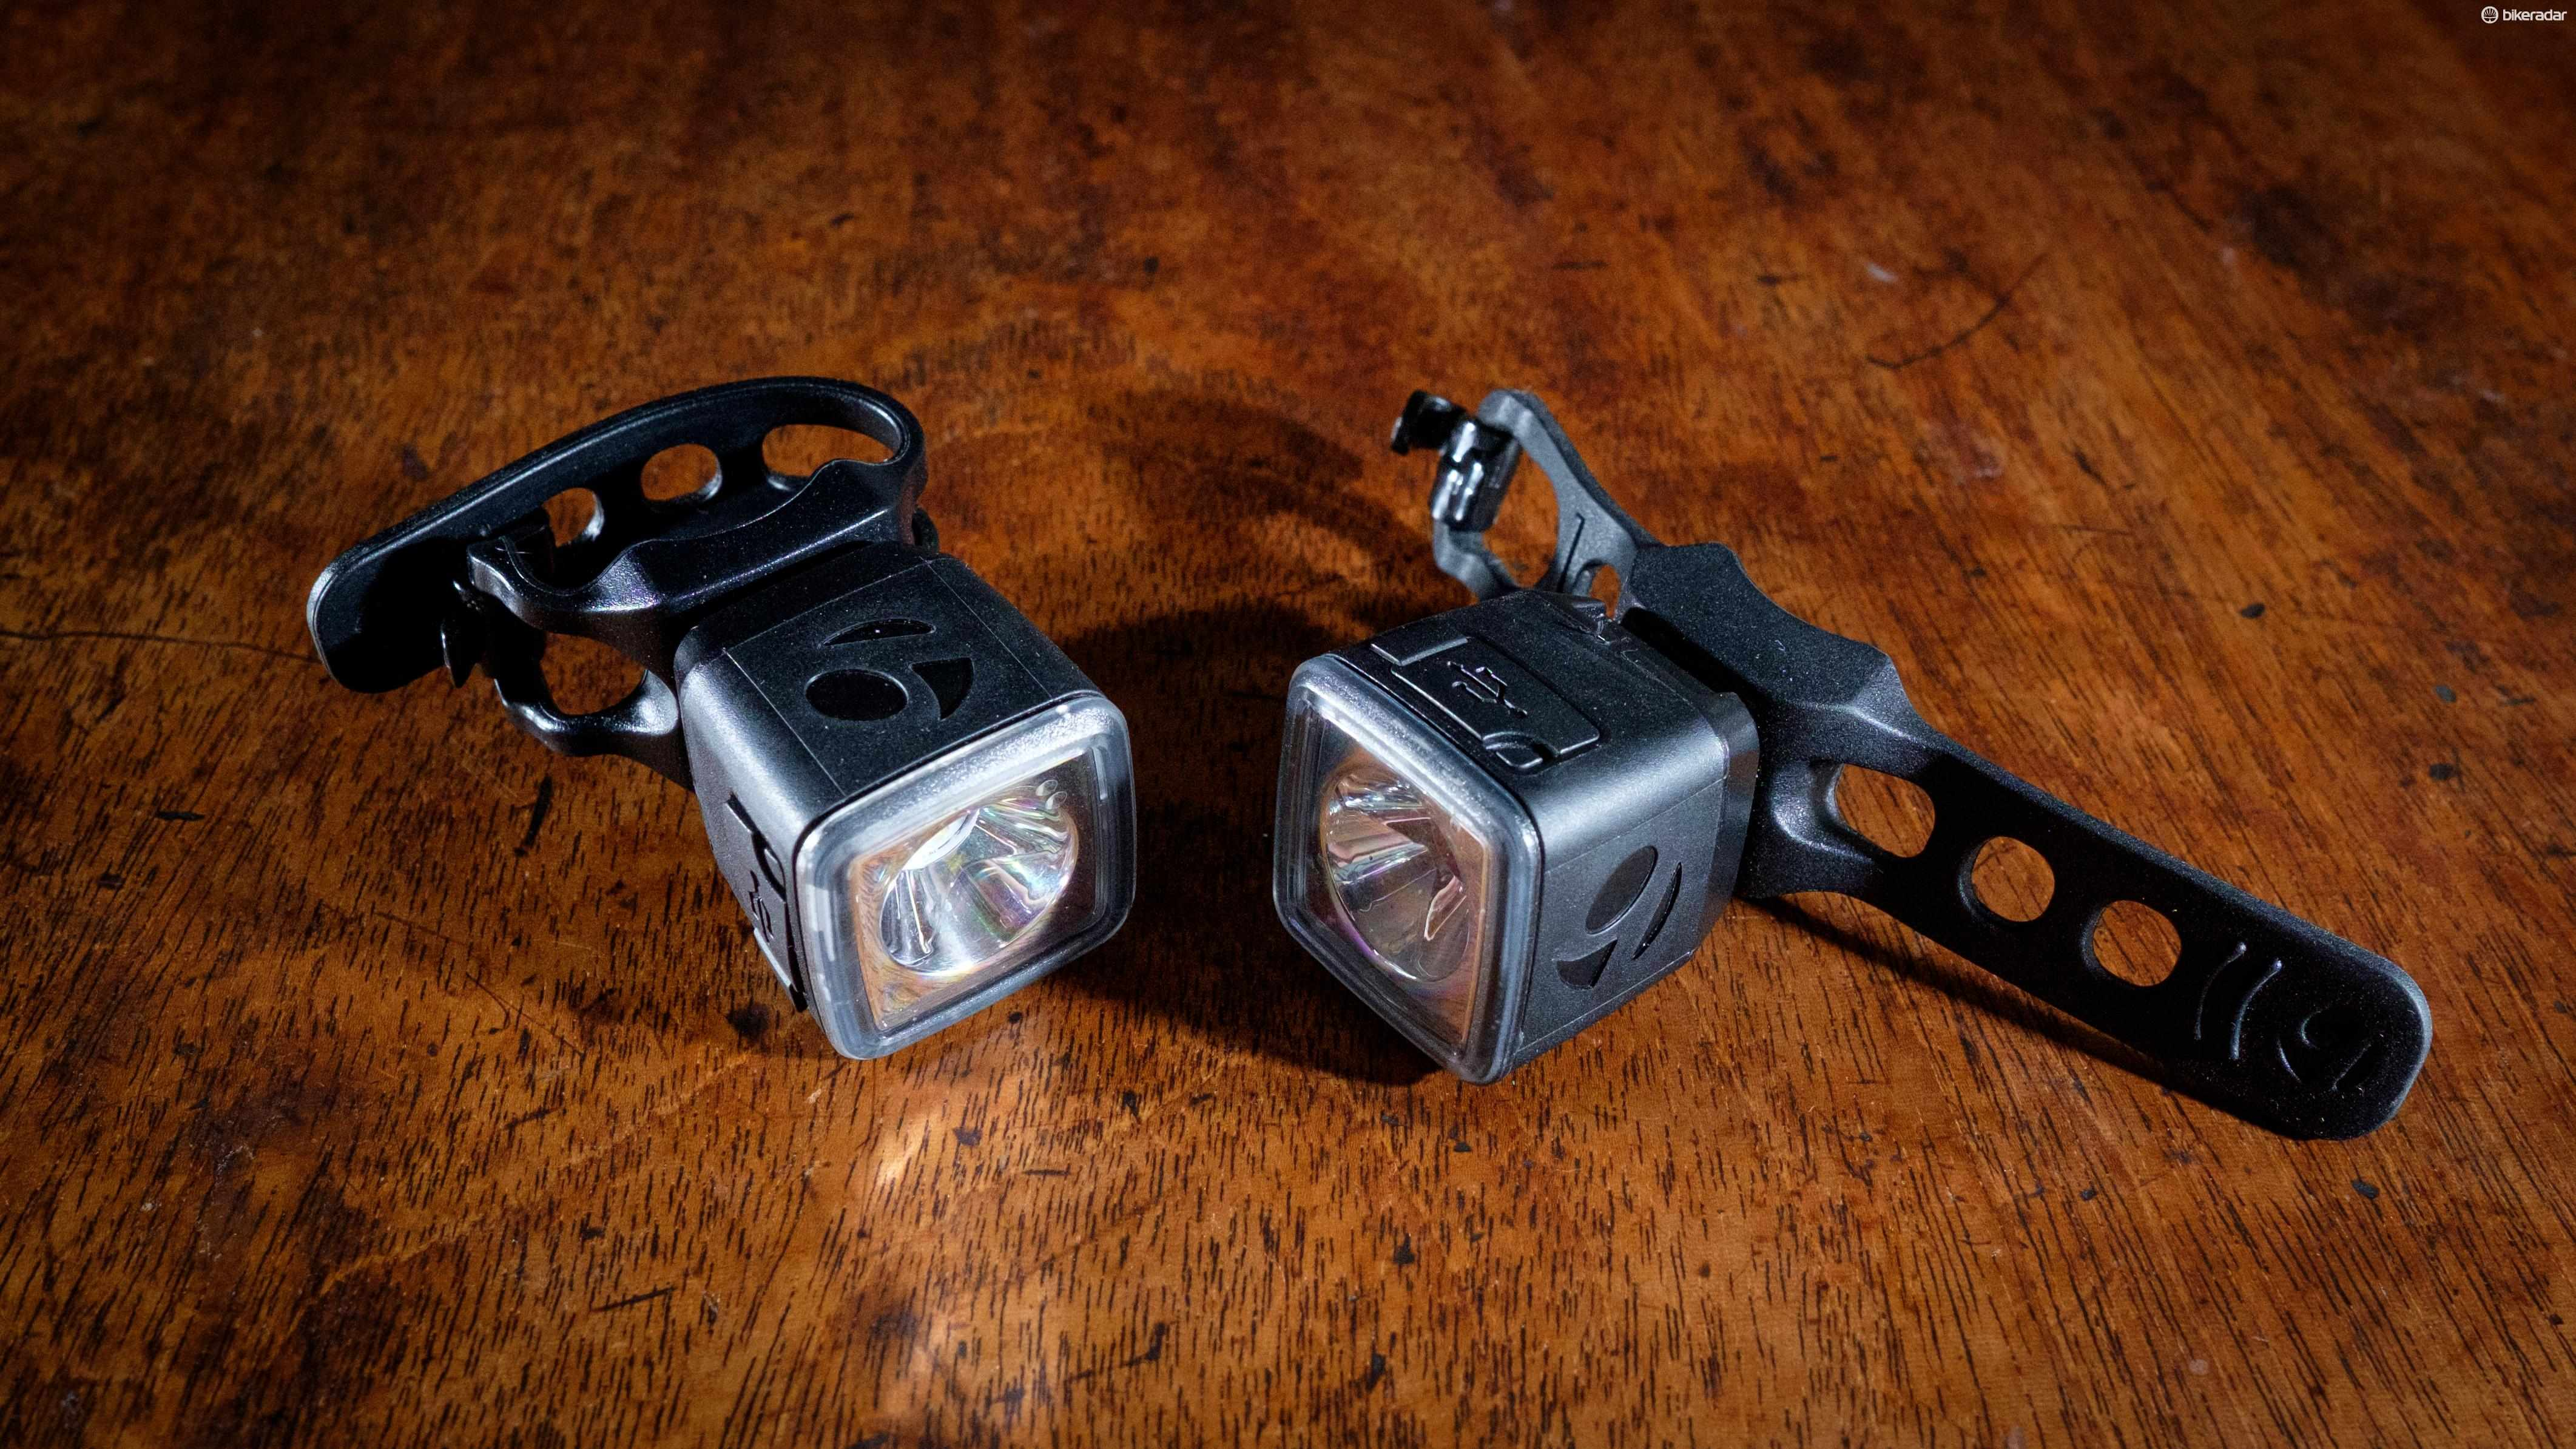 Bontrager's Ion 100 R/Flare R City lights are miniscule, but thanks to CREE LEDs and clever optics they pack a serious punch